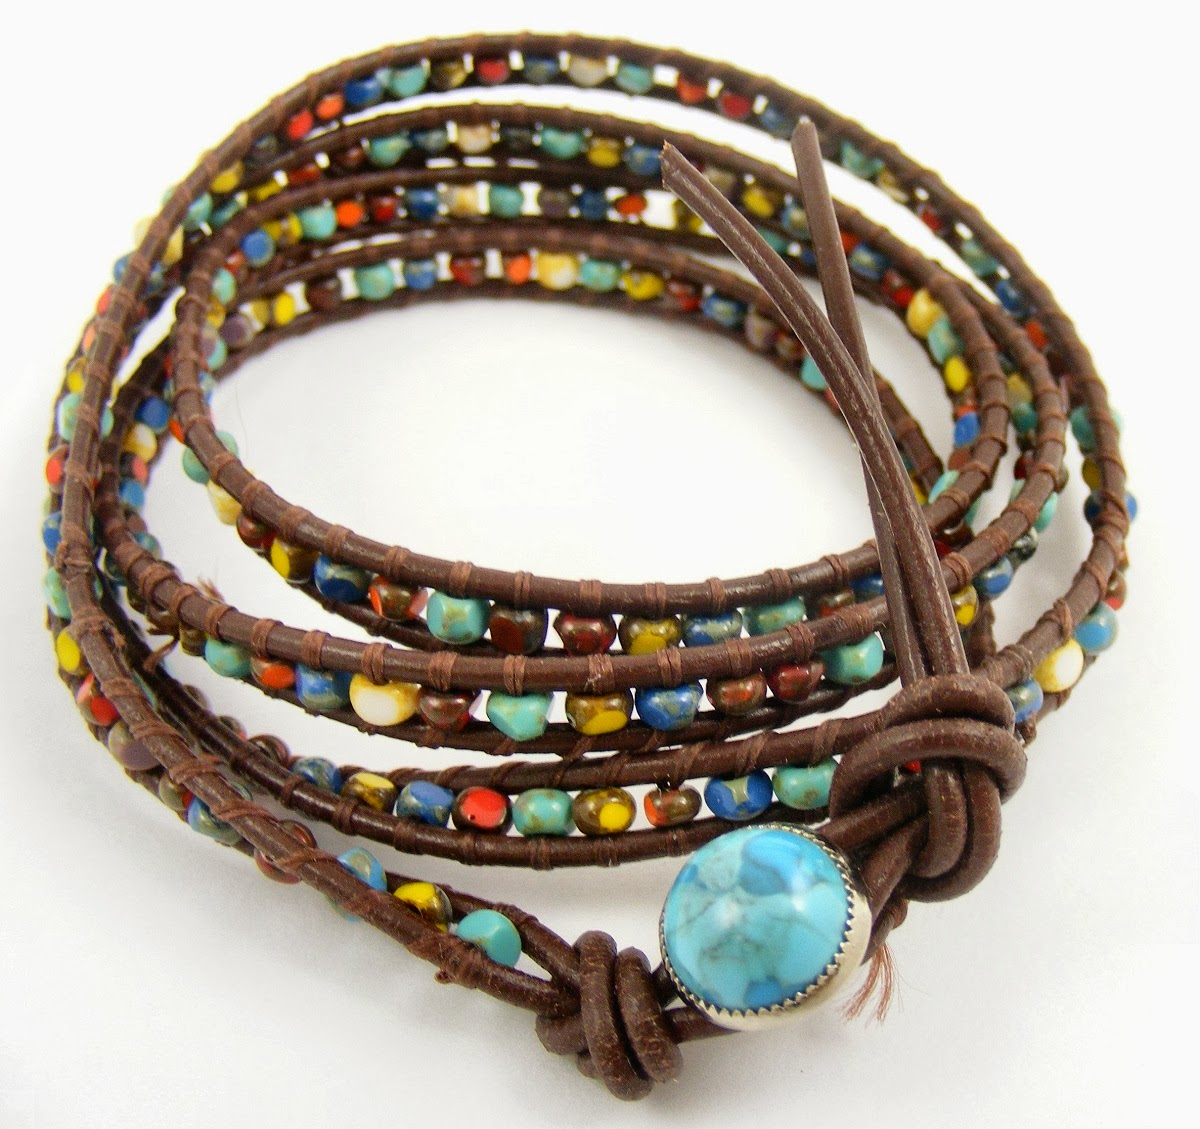 Leather Wrap Bracelet With Size 5 And 6 Faceted Seed Beads